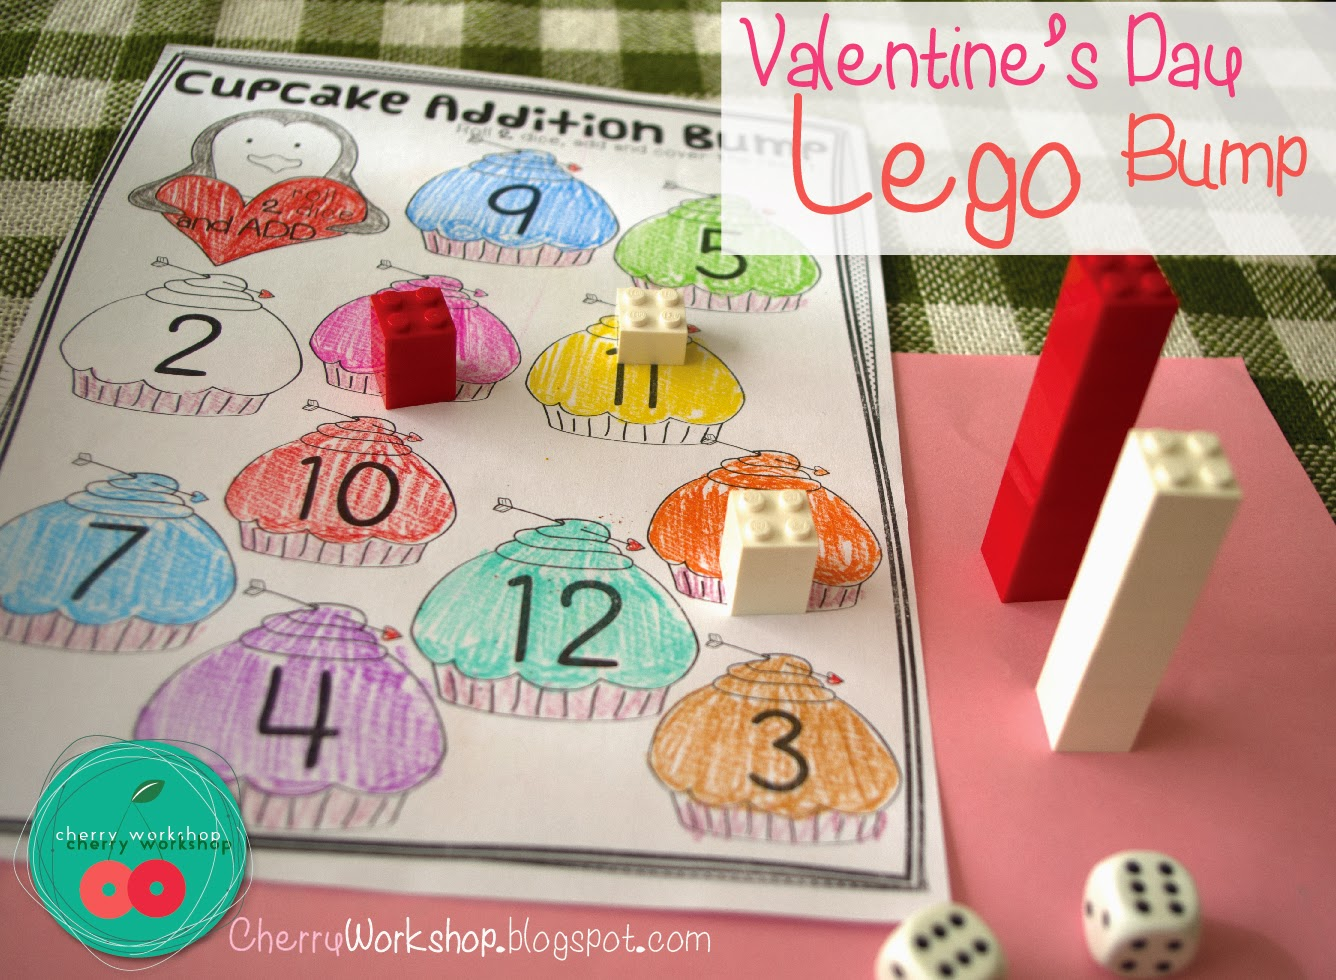 Lego Bump Games for Valentine's Day {Cherry Workshop}